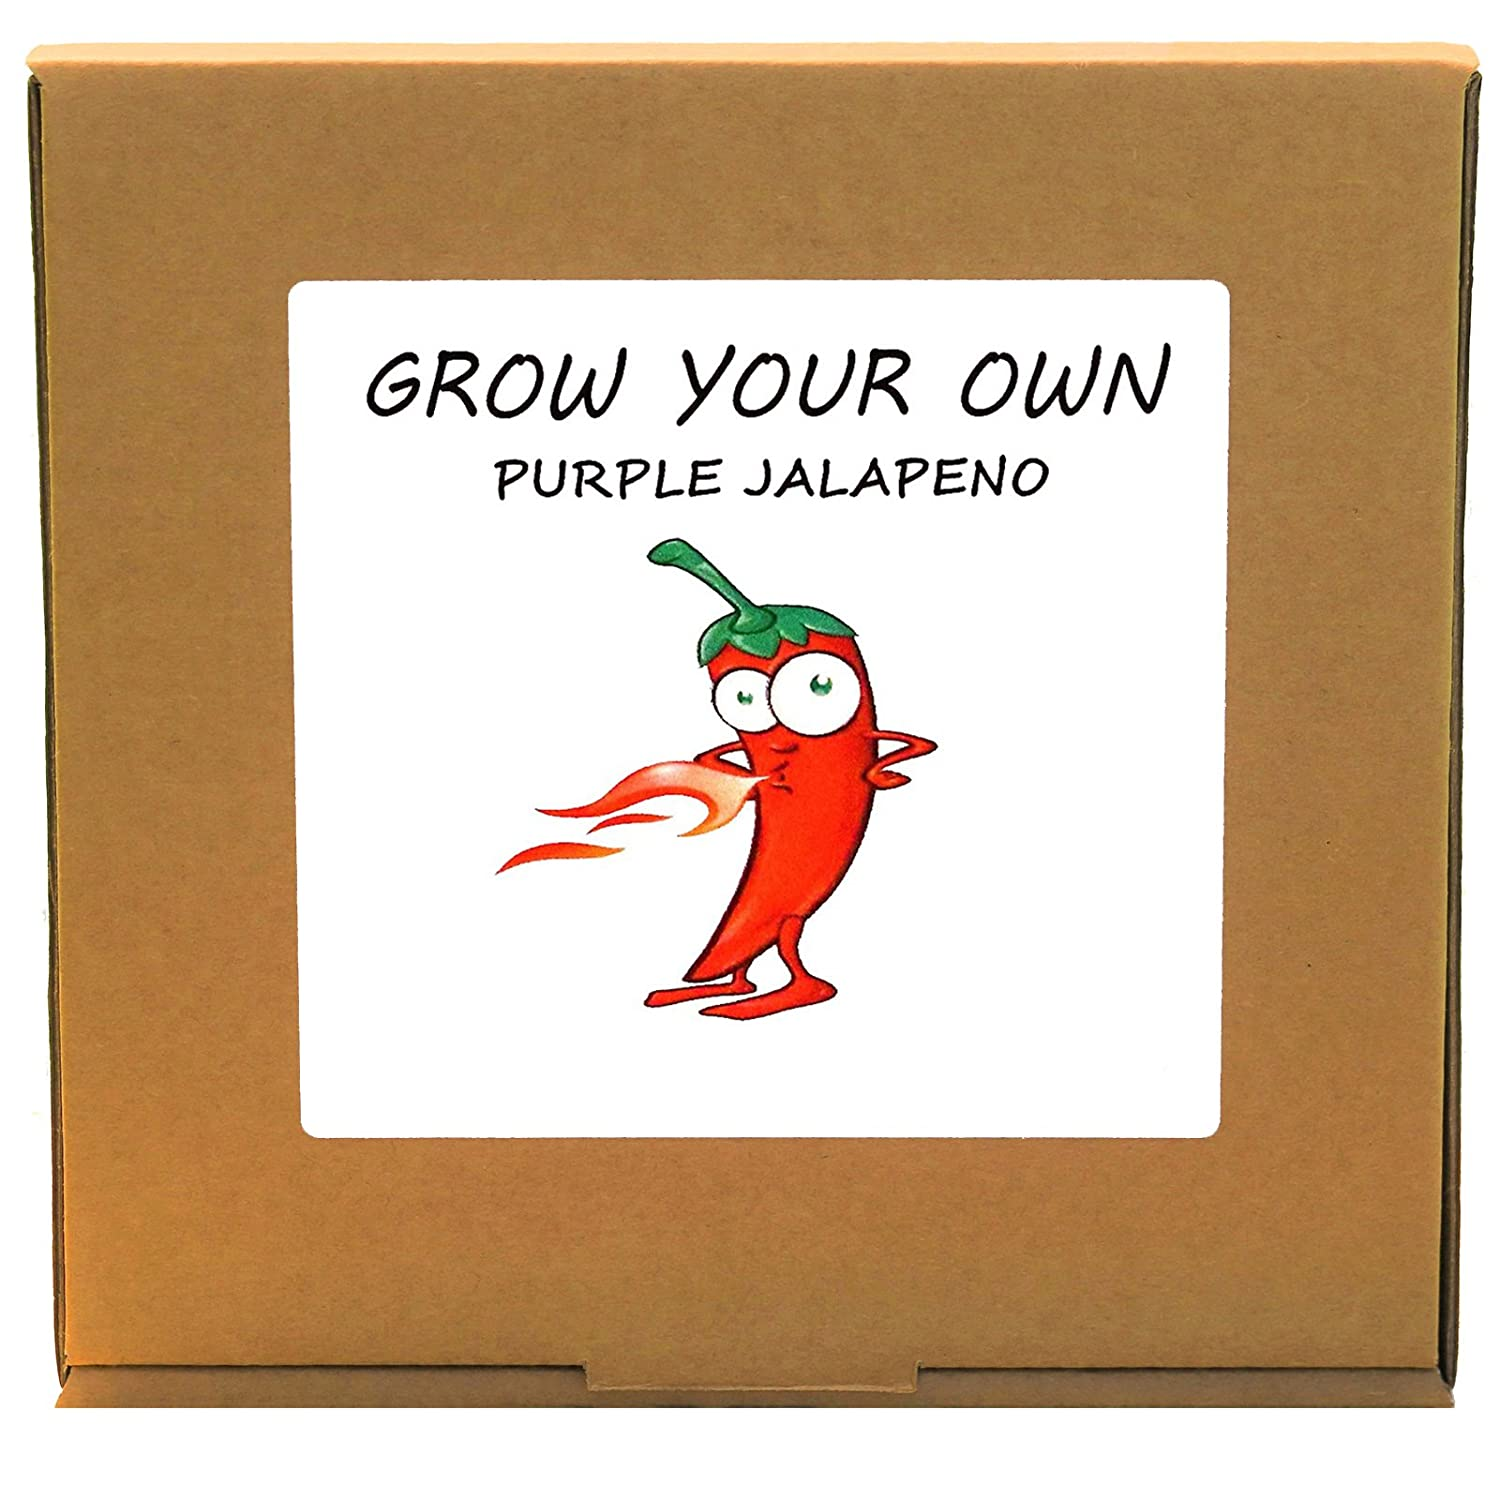 Grow Your Own Purple Jalapeno Hot Chillies Plant Kit - Unusual Christmas Gardening/Gardeners Gift GrowYourOwnPlants